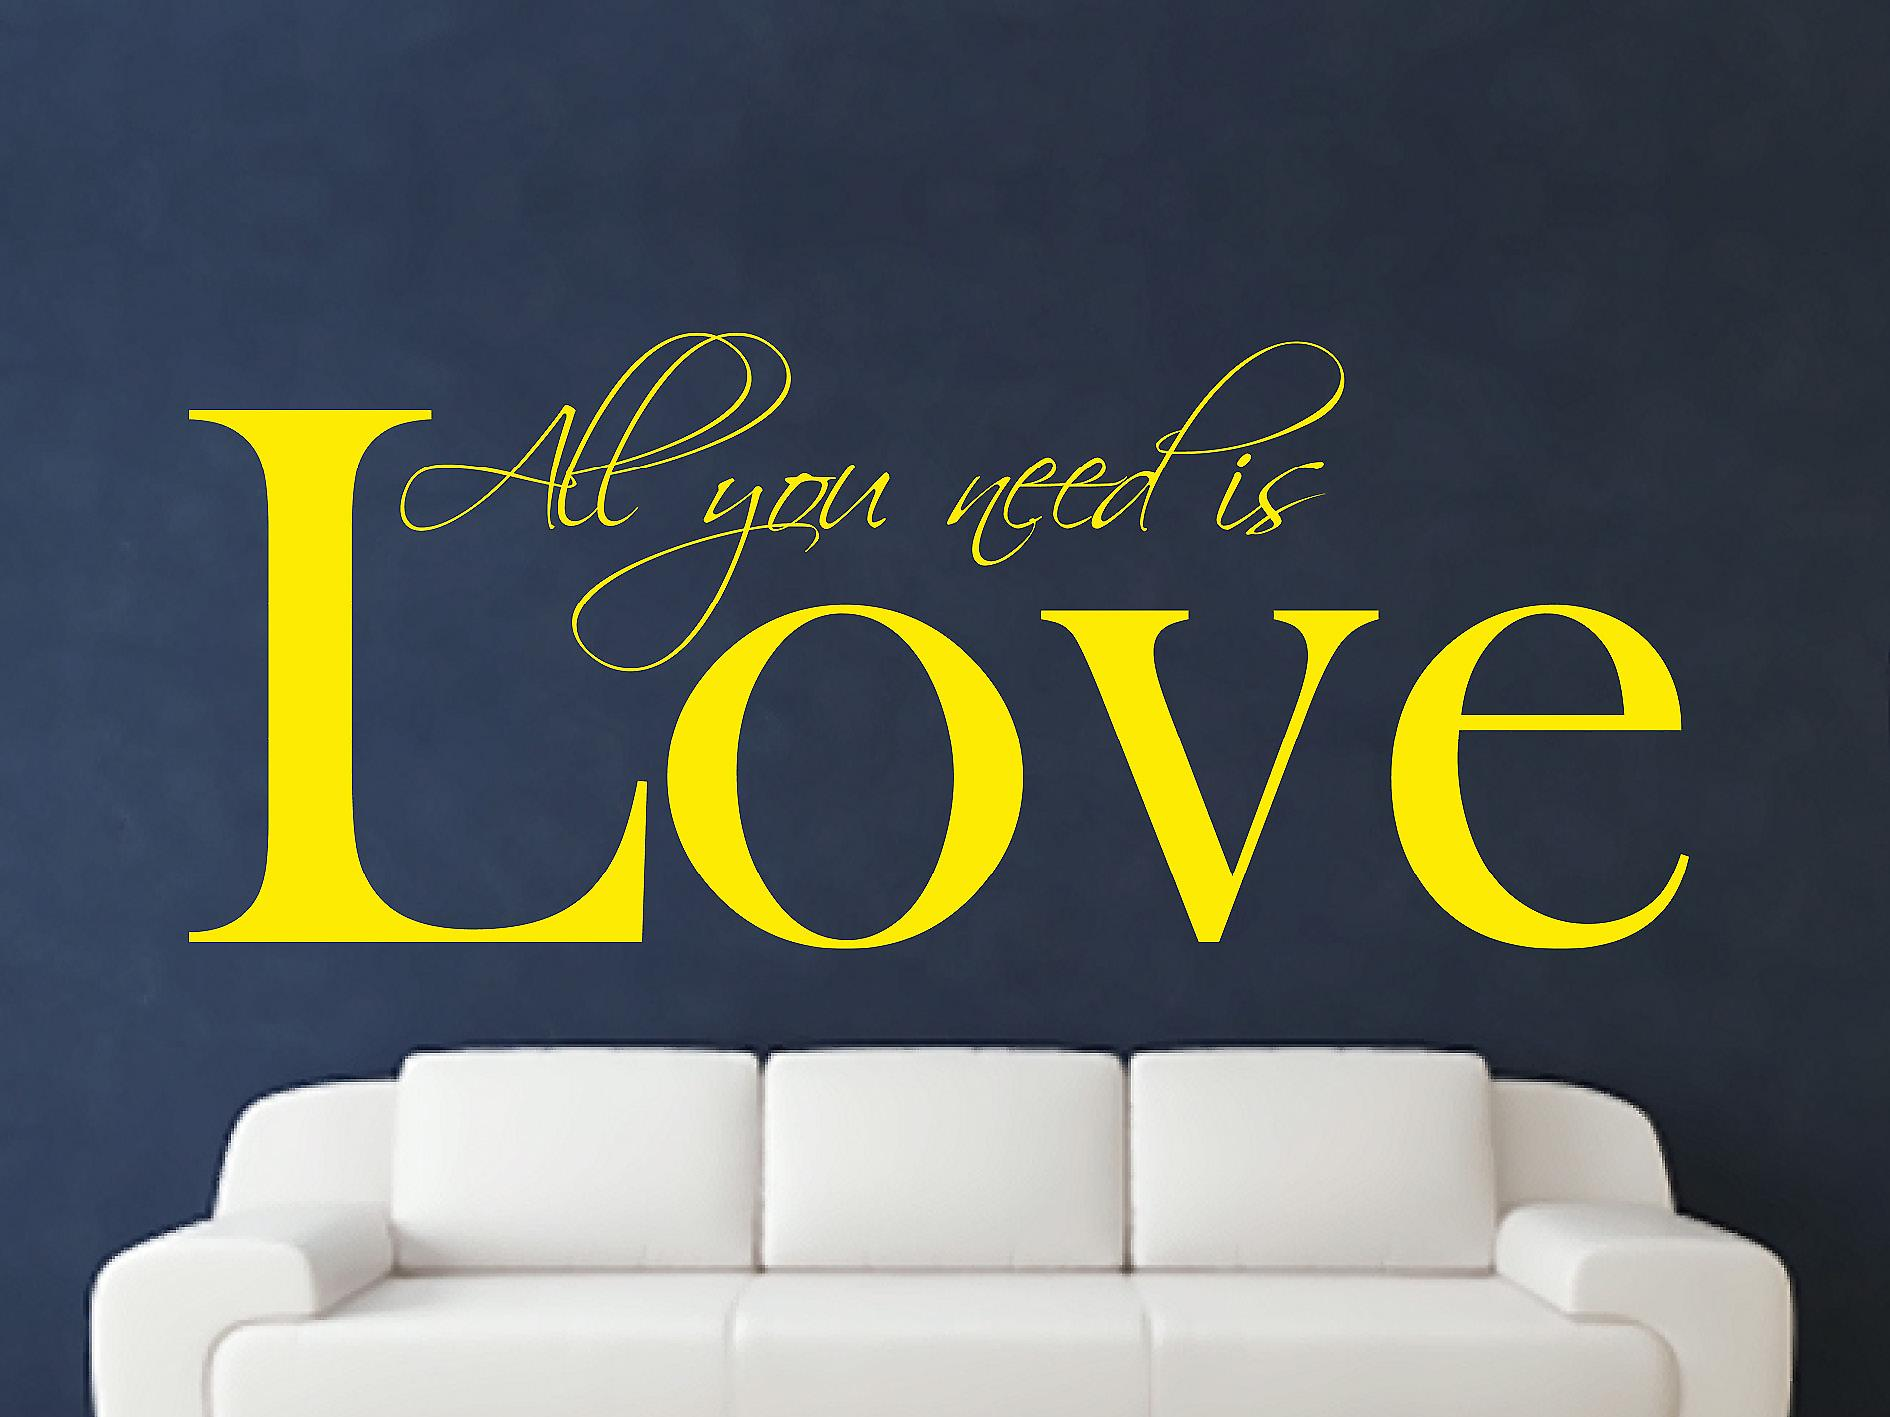 All You Need Art Wall Sticker - Bright Yellow